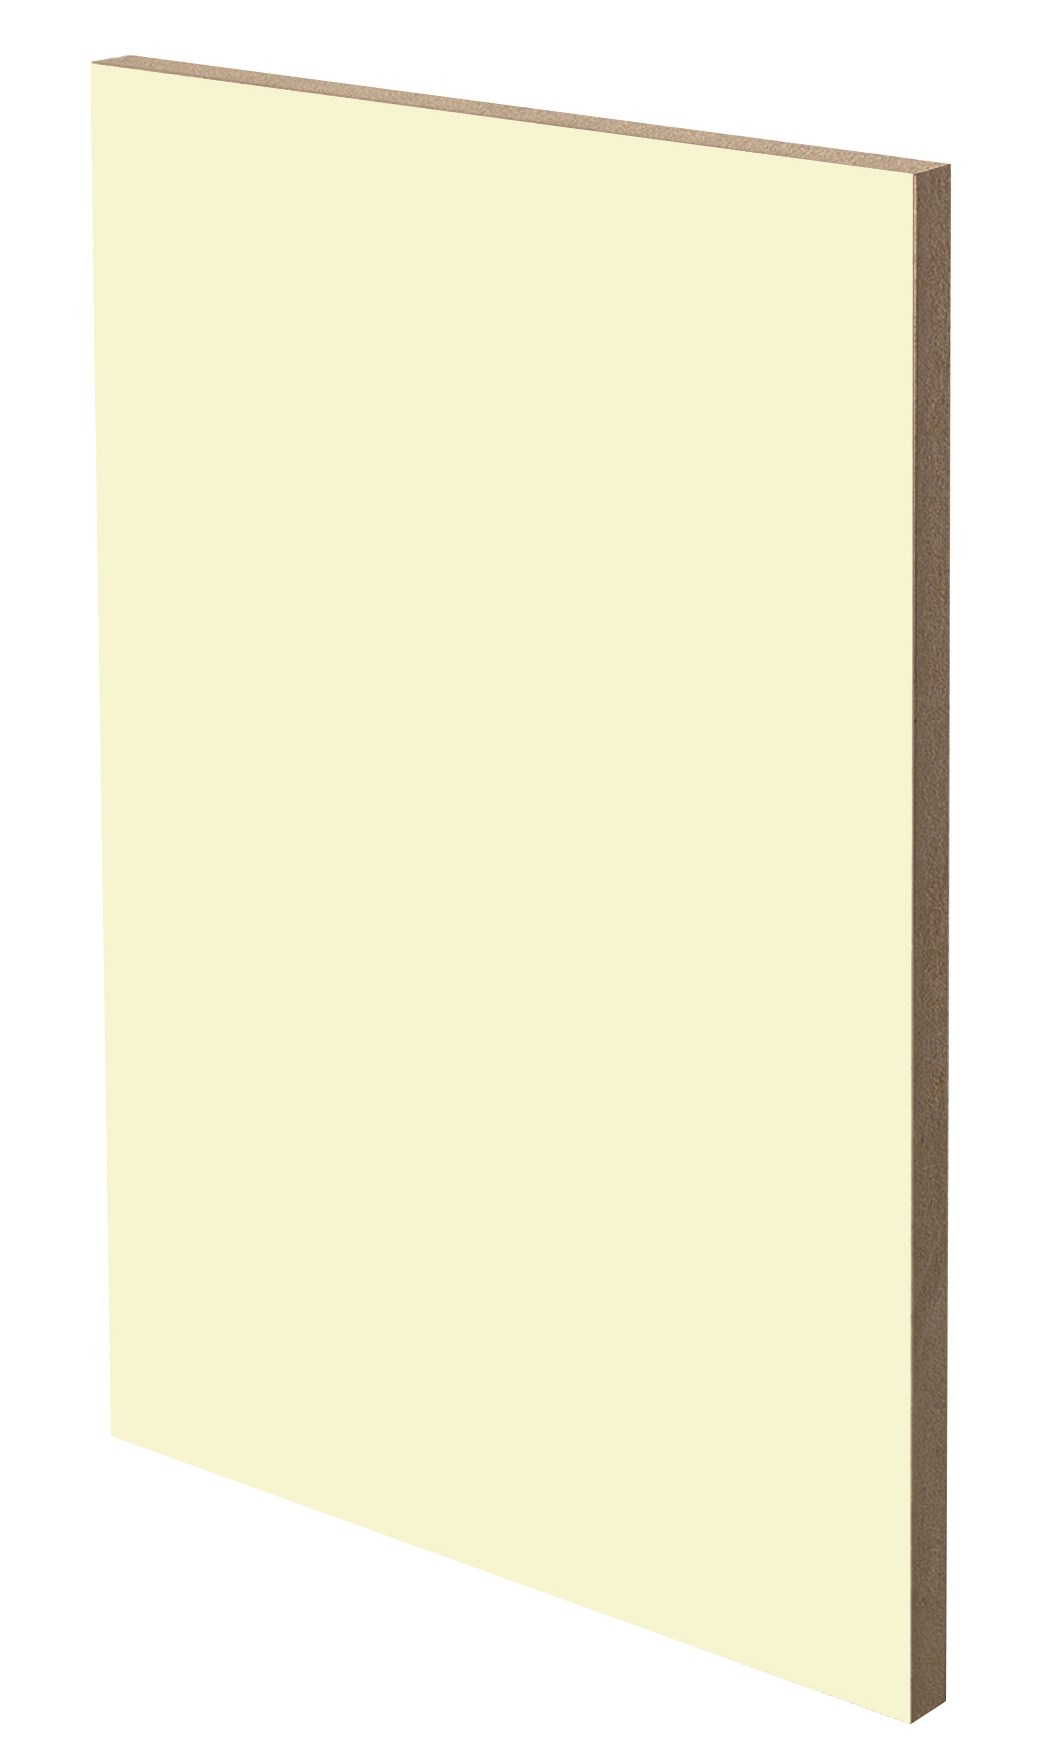 Finsa Superpan Décor Melamine Faced Chipboard Sheet 1200 x 2440mm - Magnolia Textured